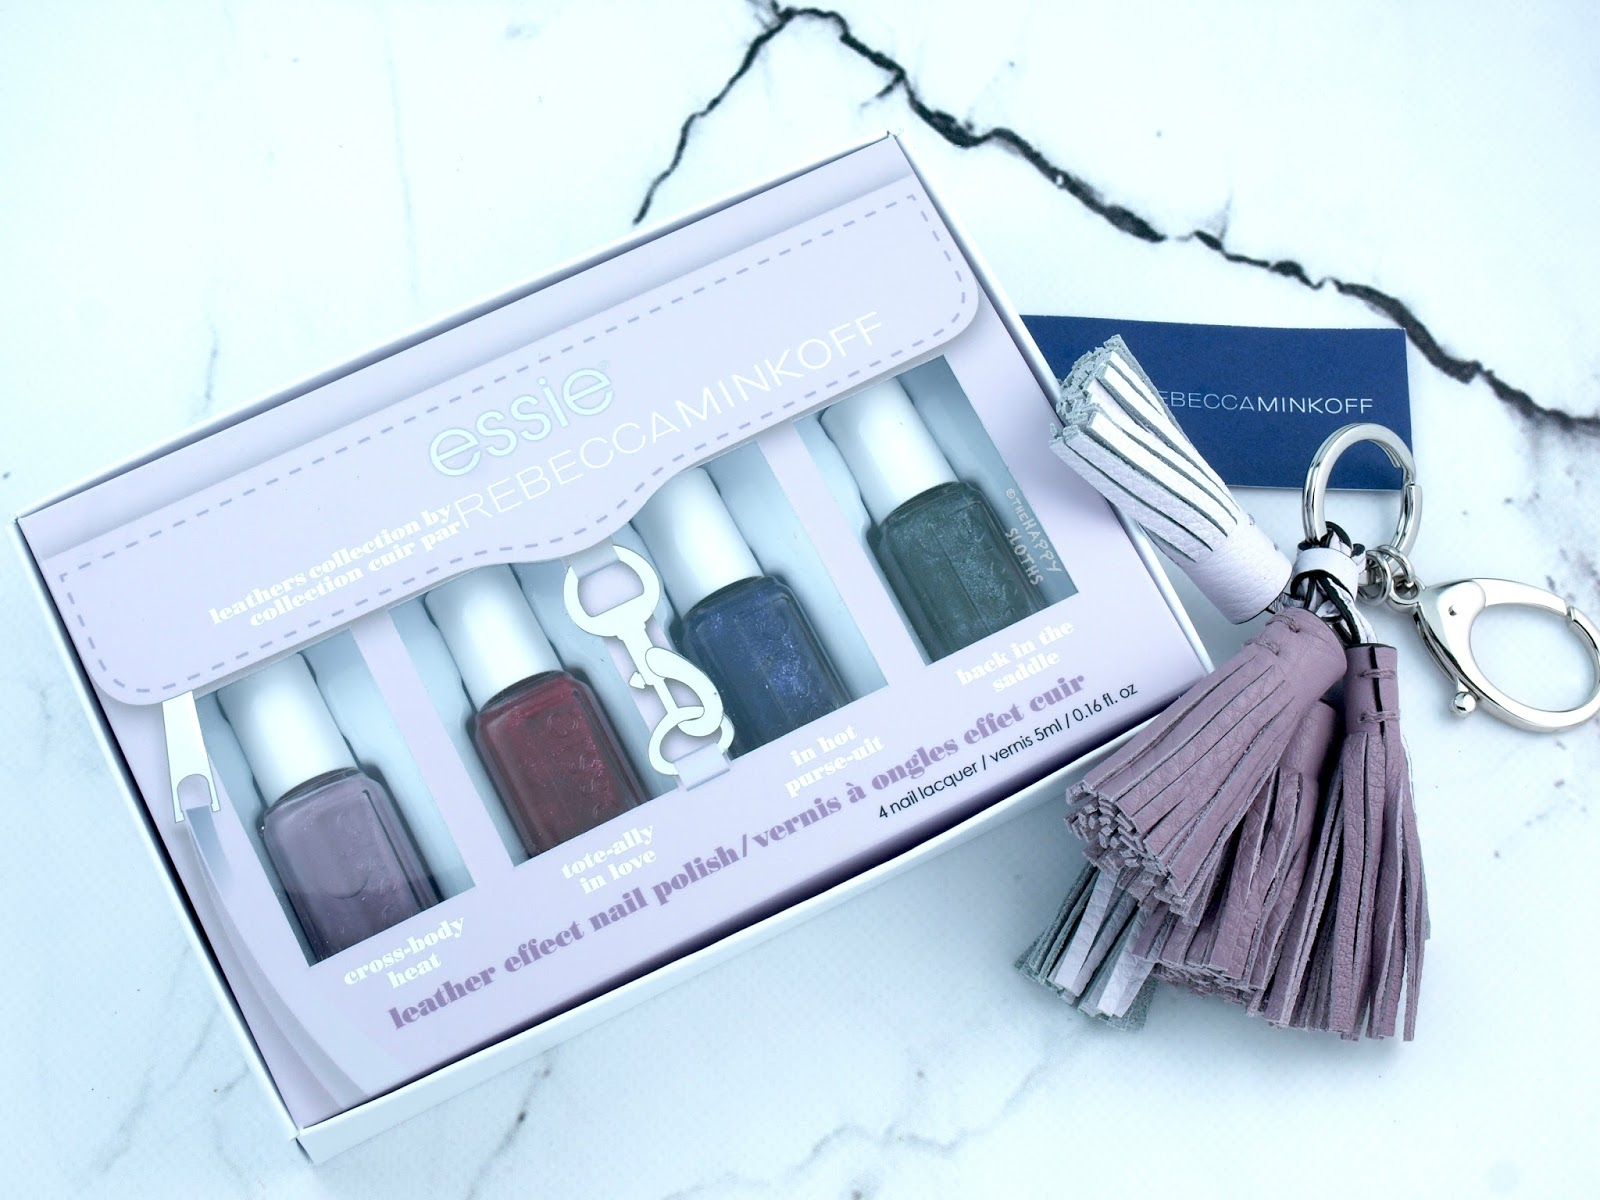 Essie Leathers Collection by Rebecca Minkoff: Review and Swatches